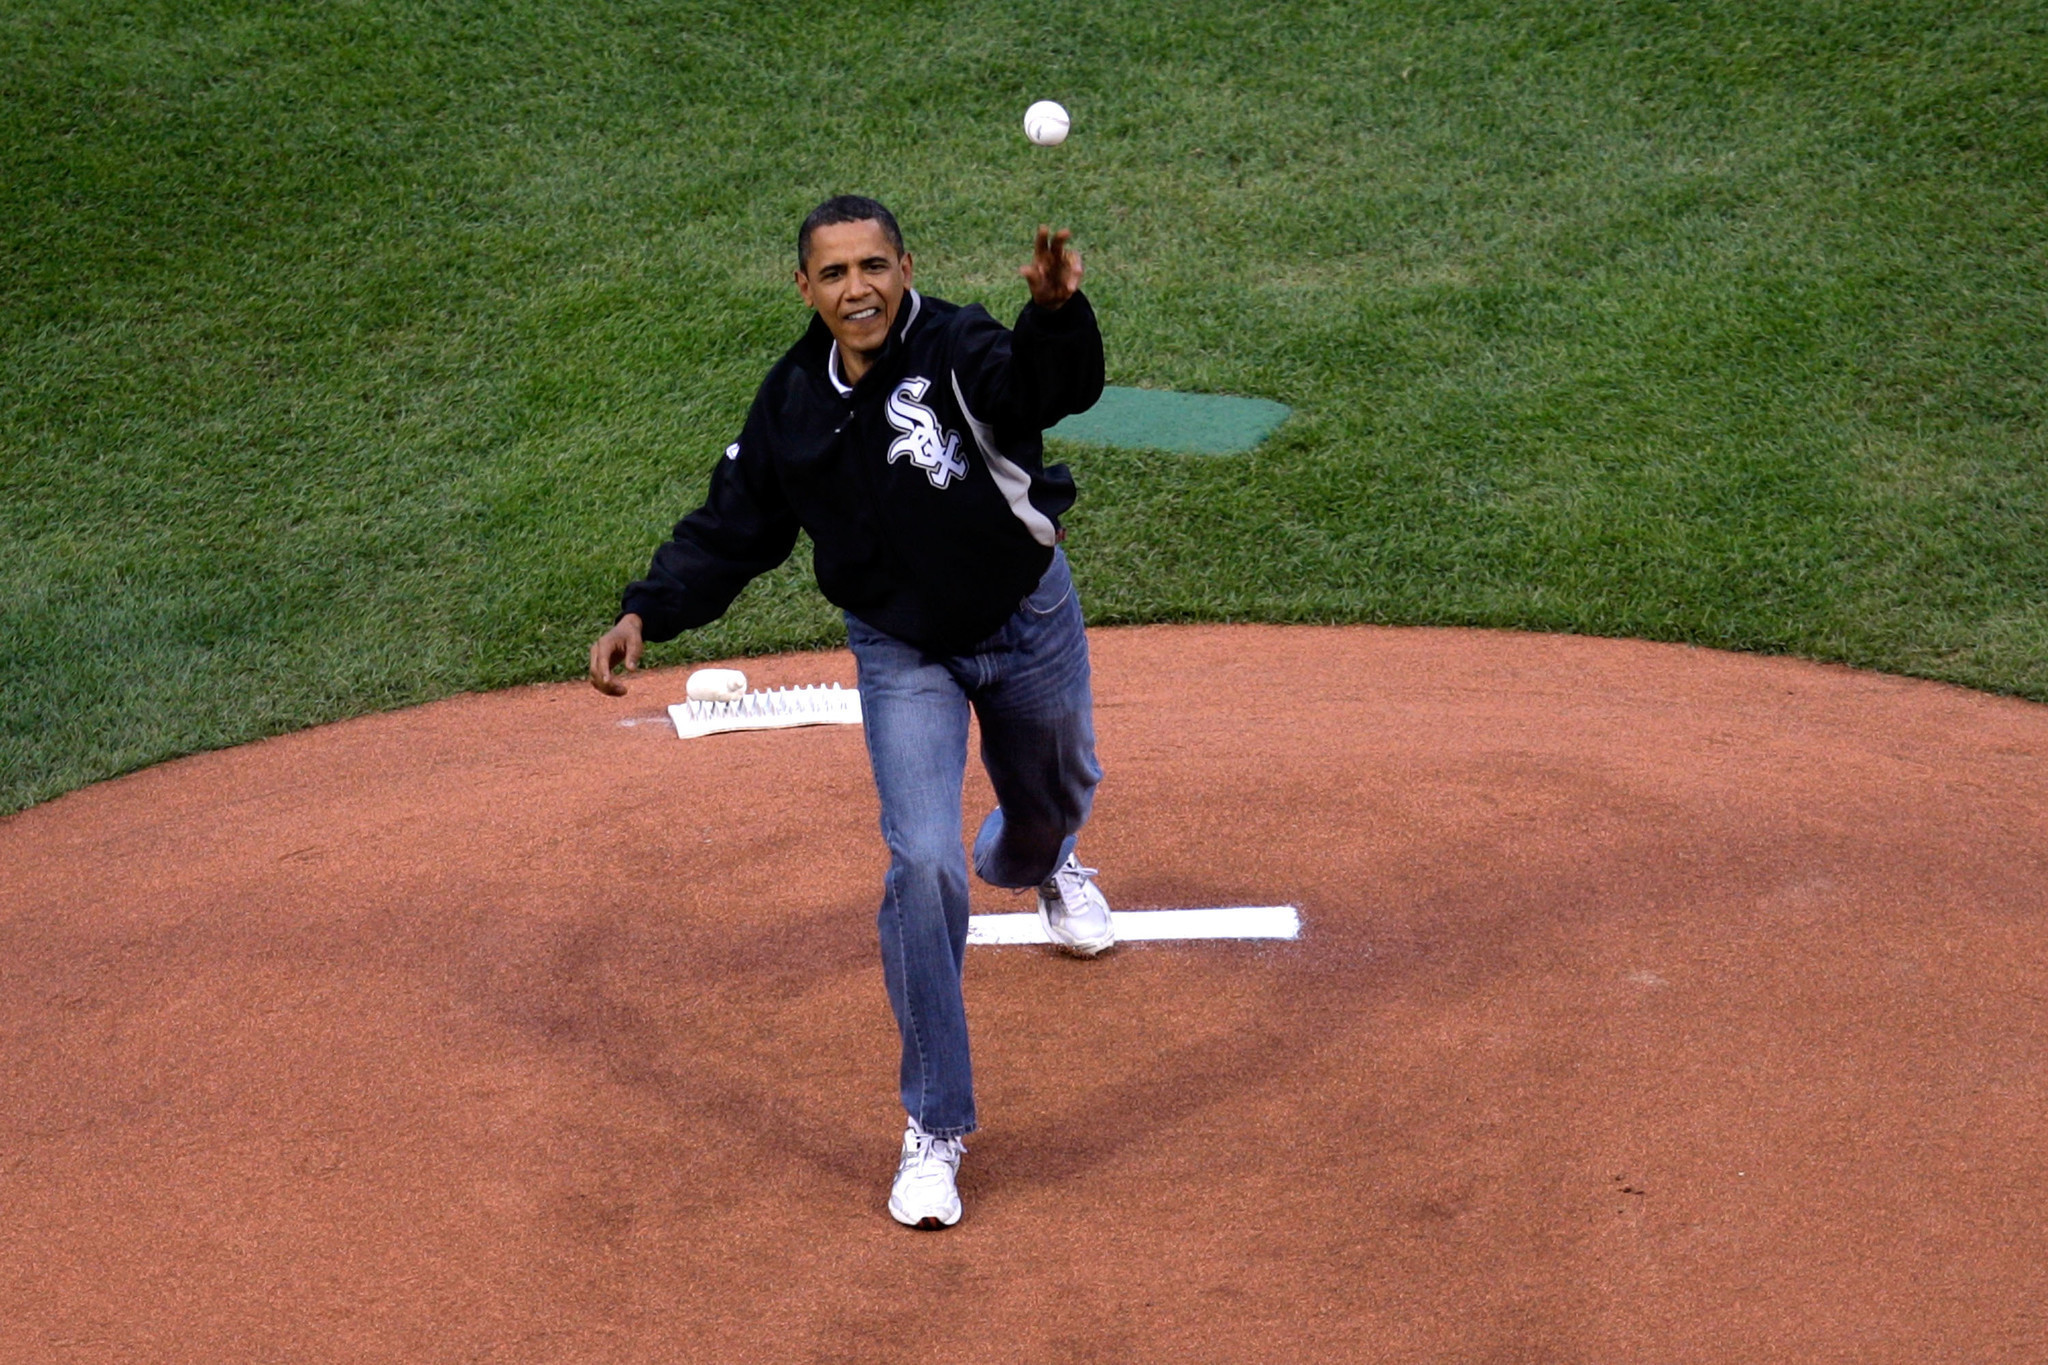 Sox fan Obama unlikely to attend Cubs playoff games this ...